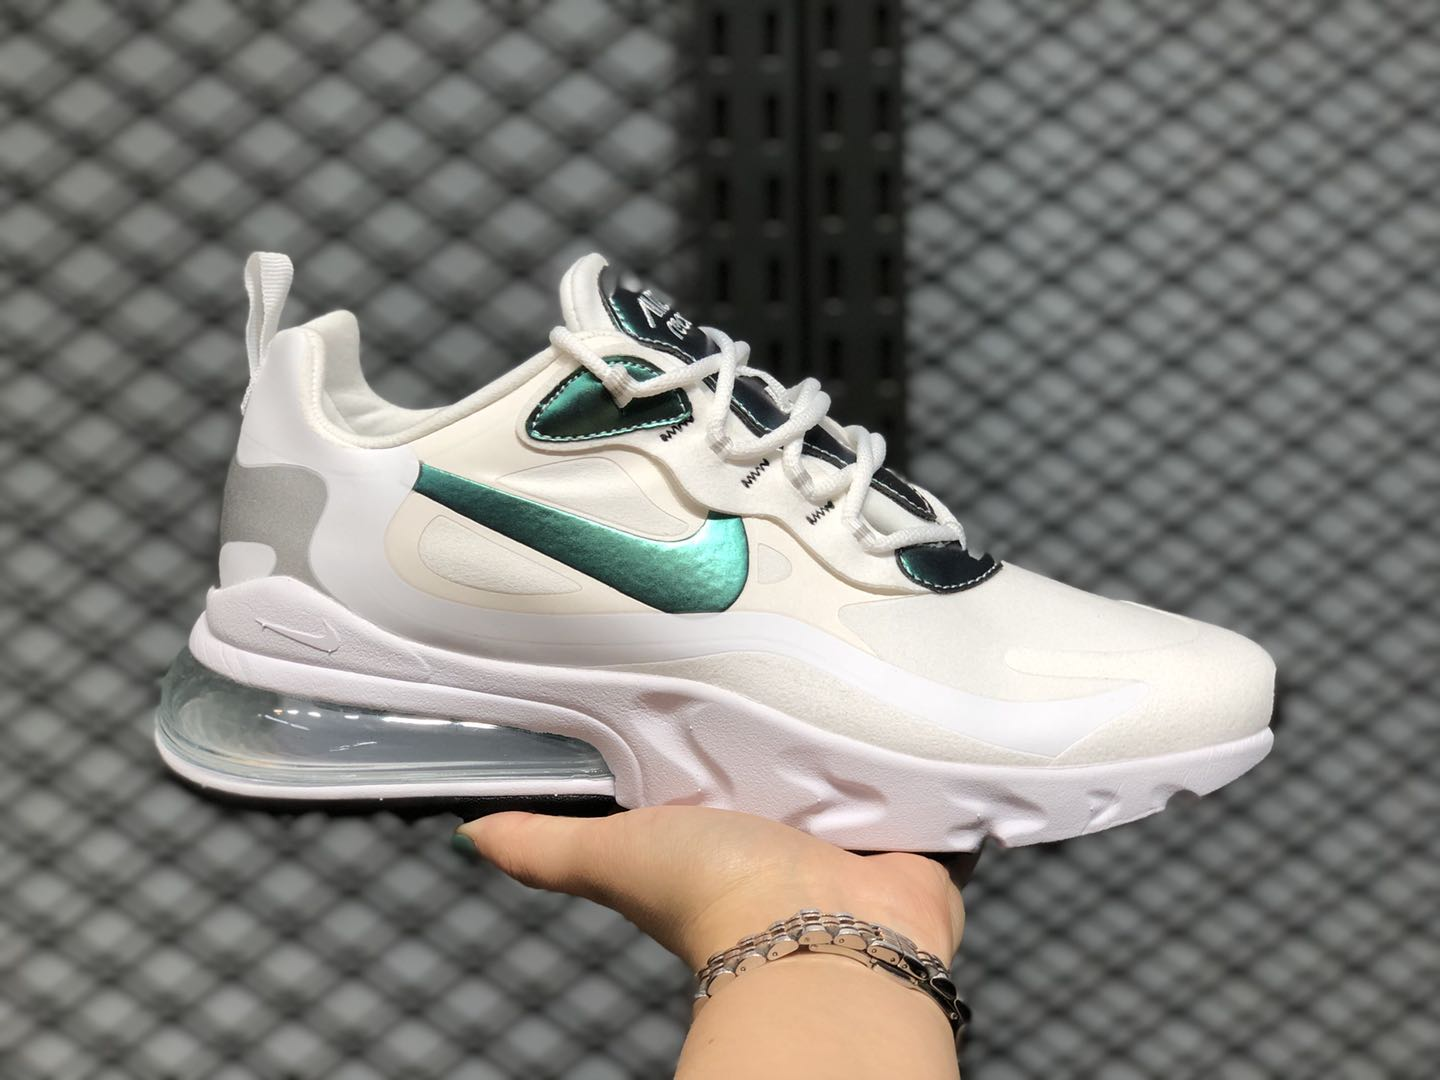 Nike Air Max 270 React Cloud White/Silver-Pine Green CZ7376-100